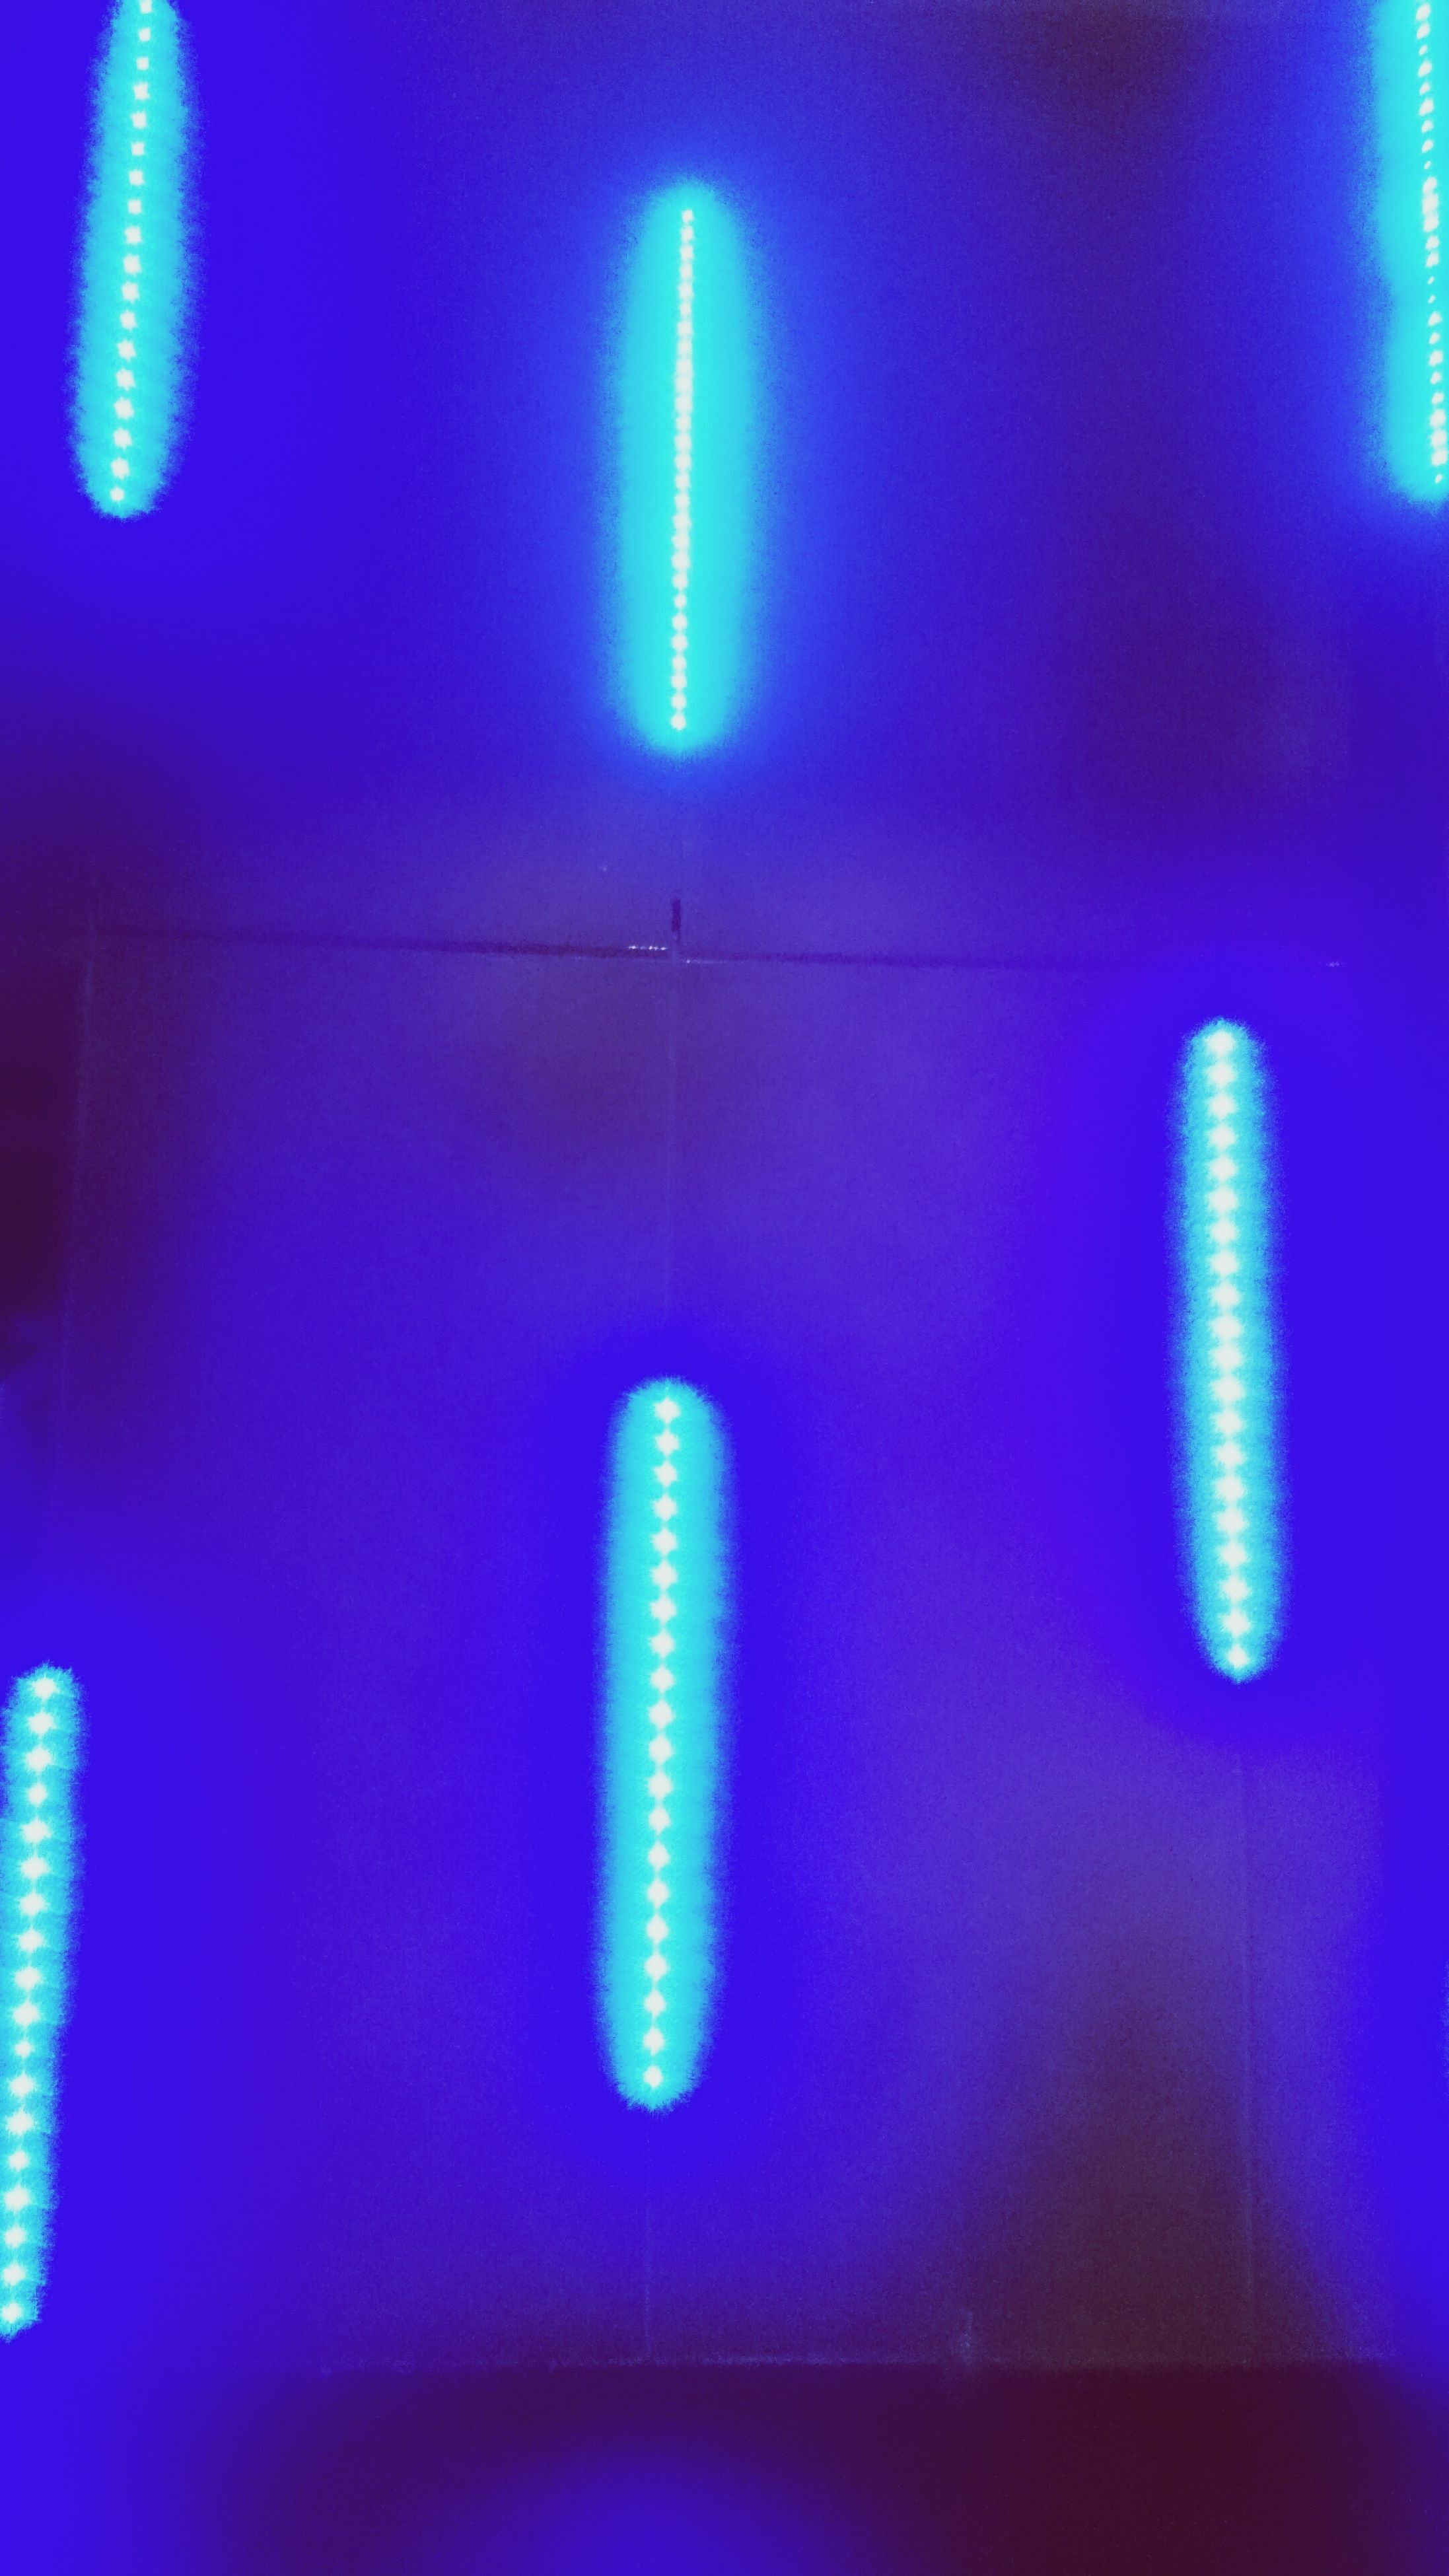 blue, close-up, no people, illuminated, indoors, neon, technology, day